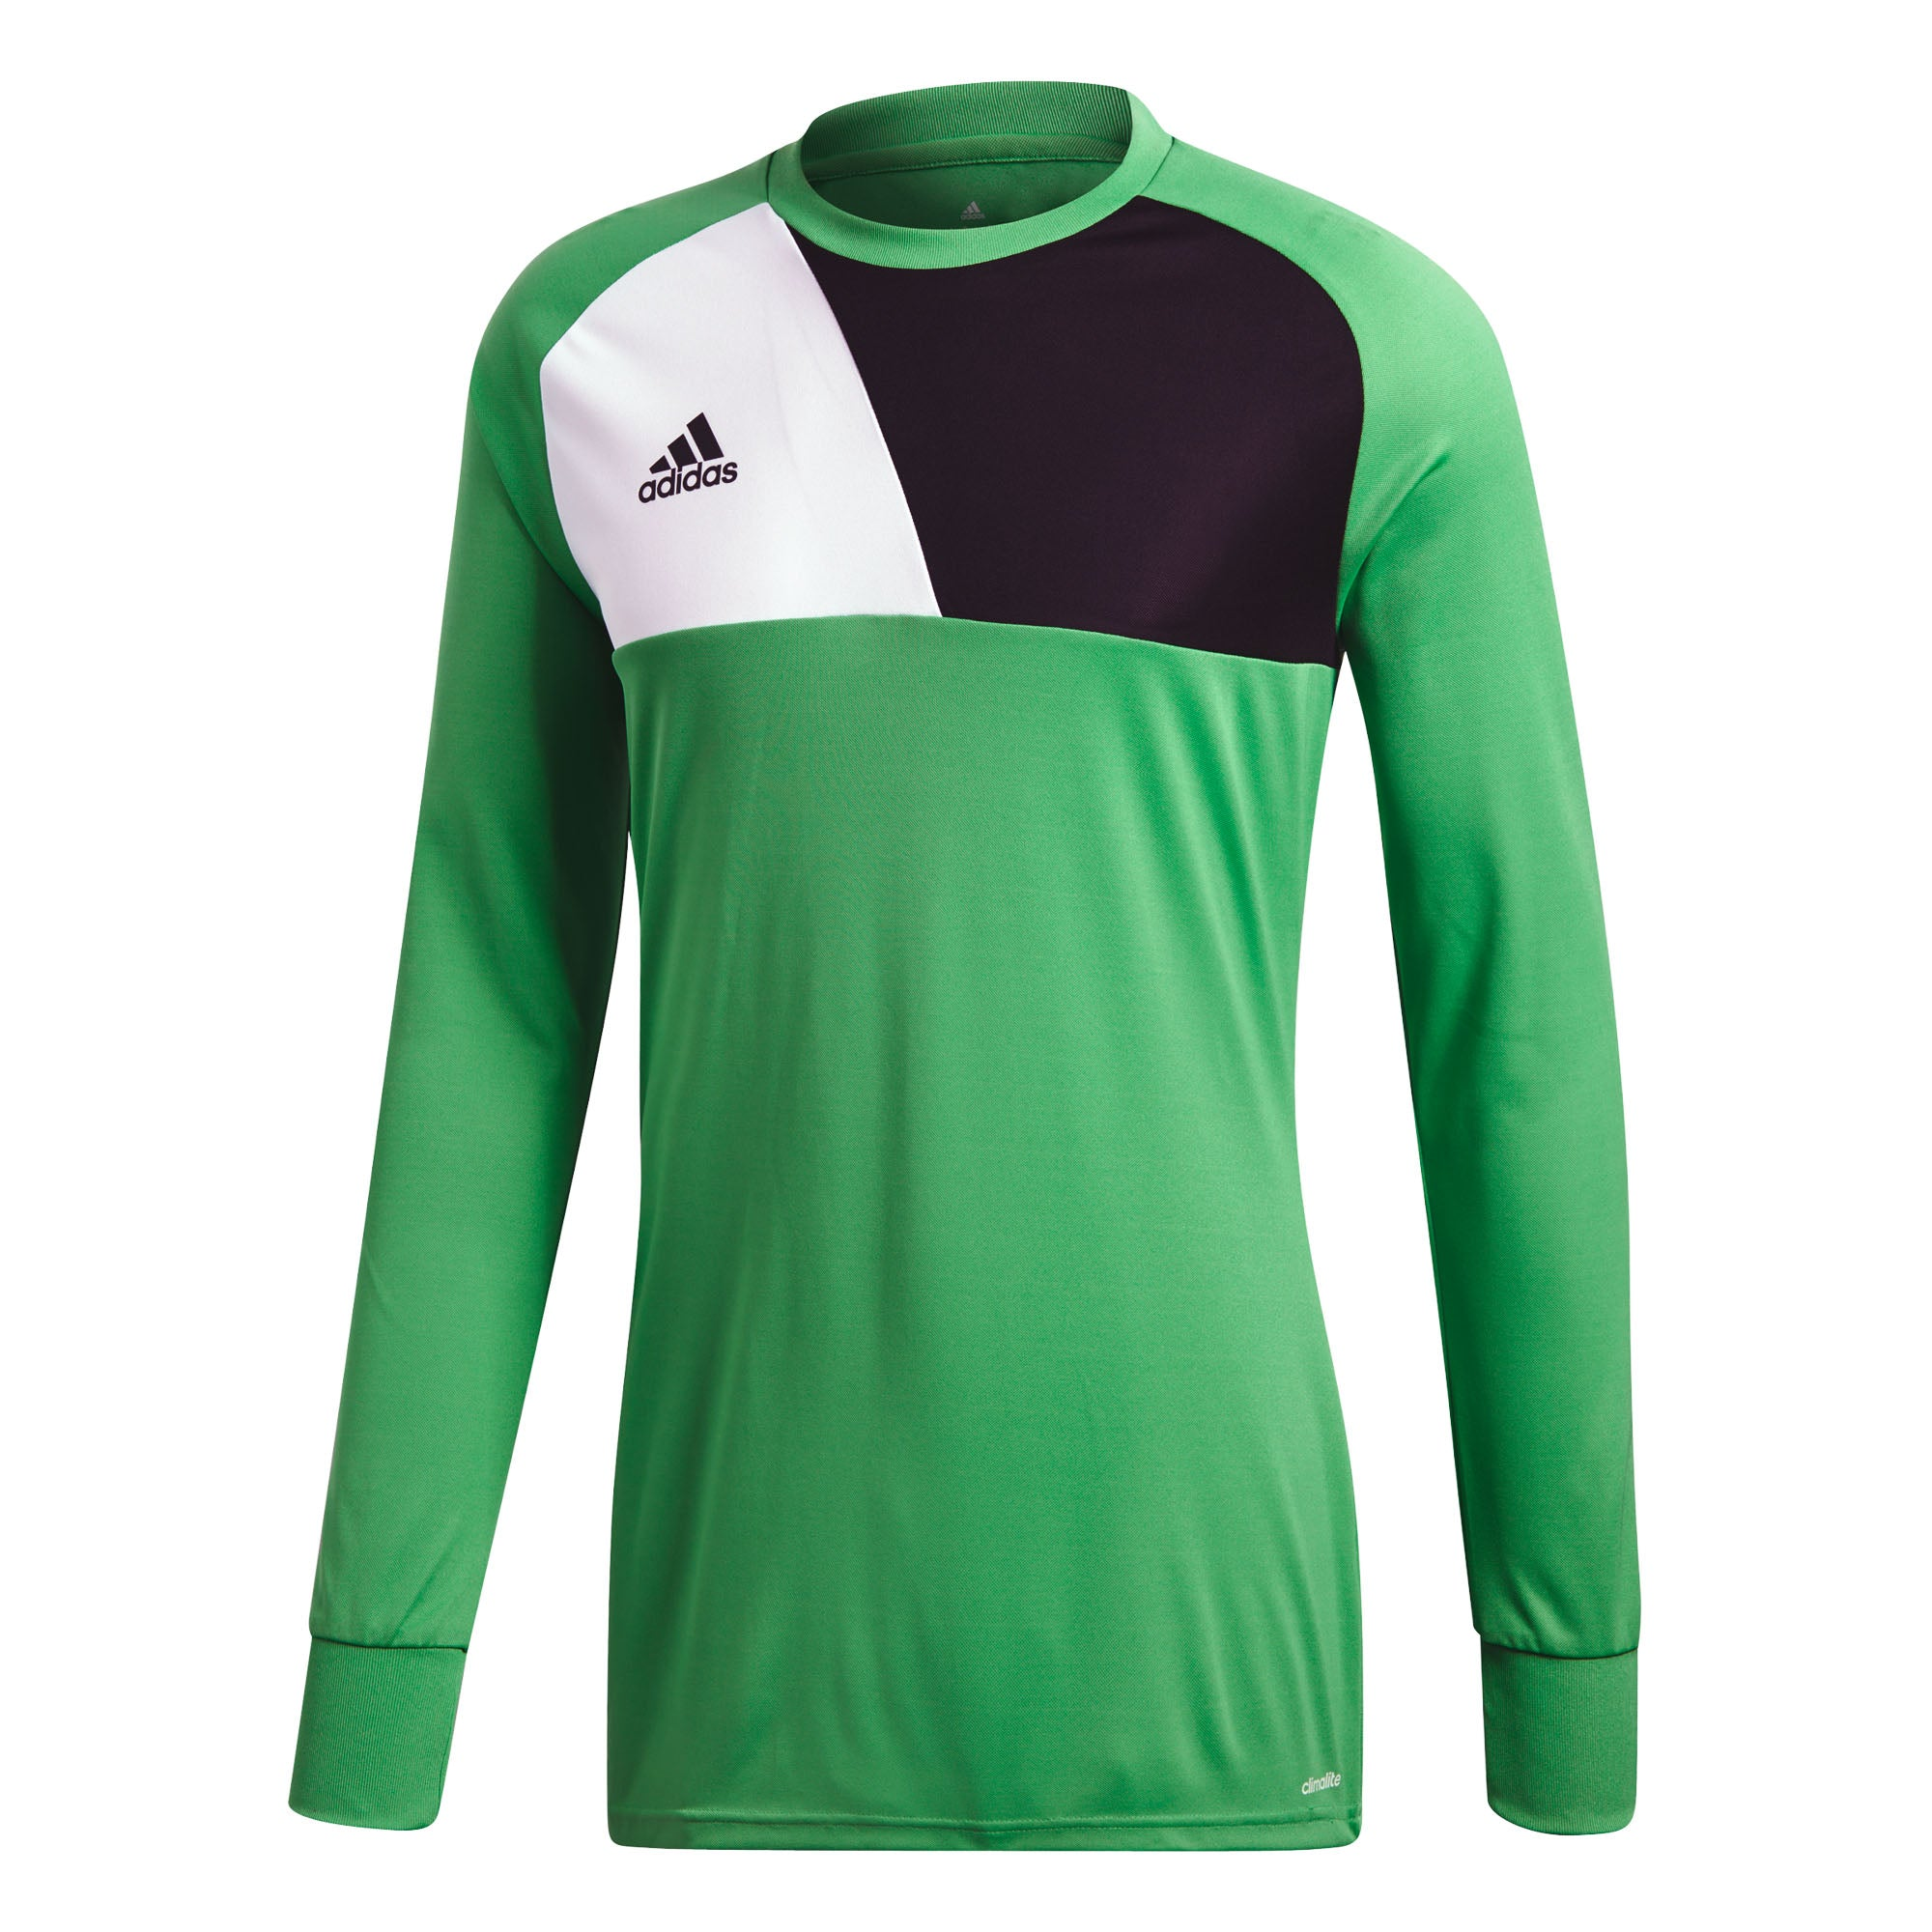 ff6953702 Adidas Assita 17 GK Jersey - Kingsgrove Sports